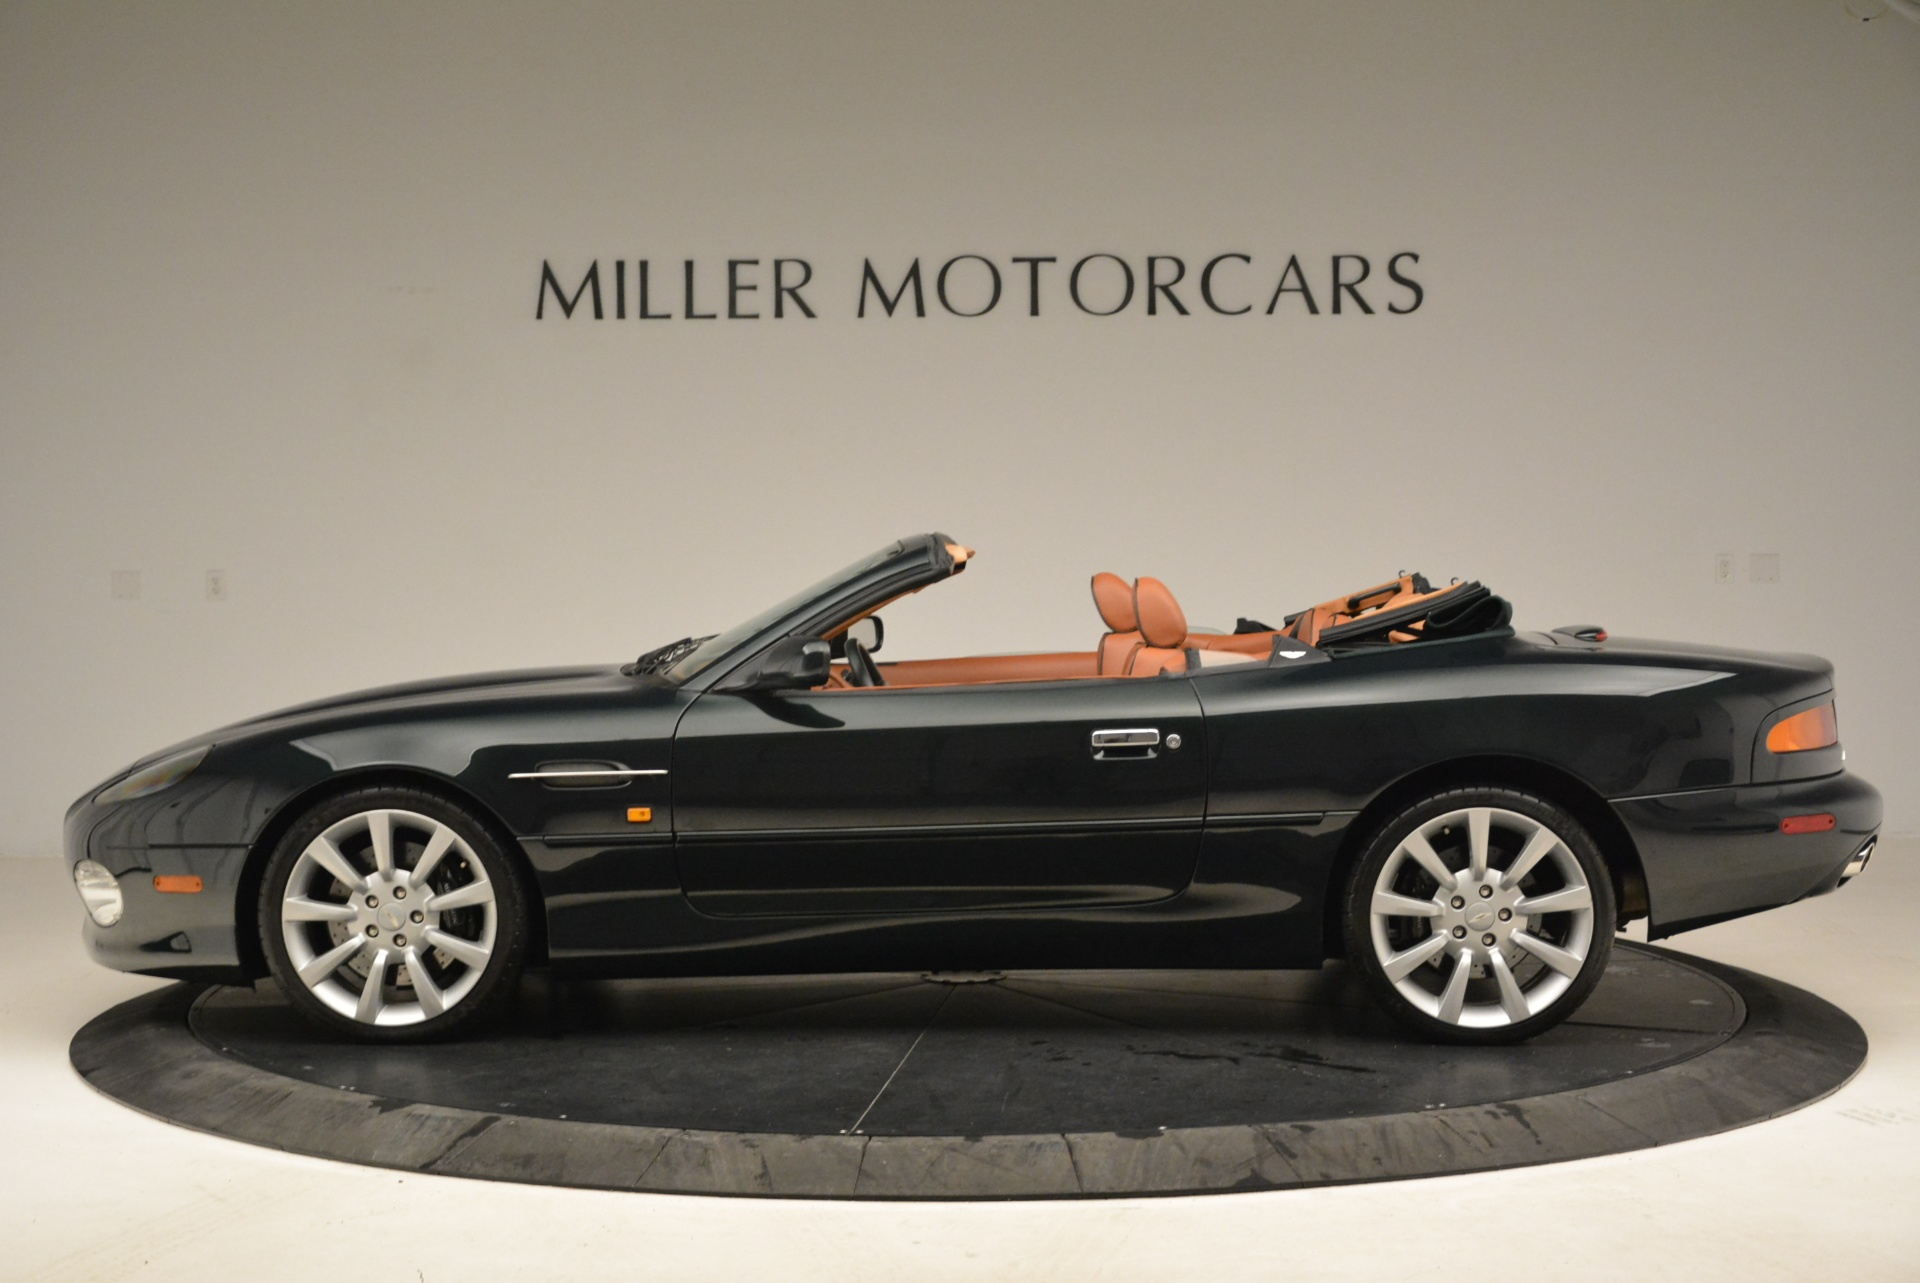 Pre Owned 2003 Aston Martin Db7 Vantage Volante For Sale Miller Motorcars Stock 7307